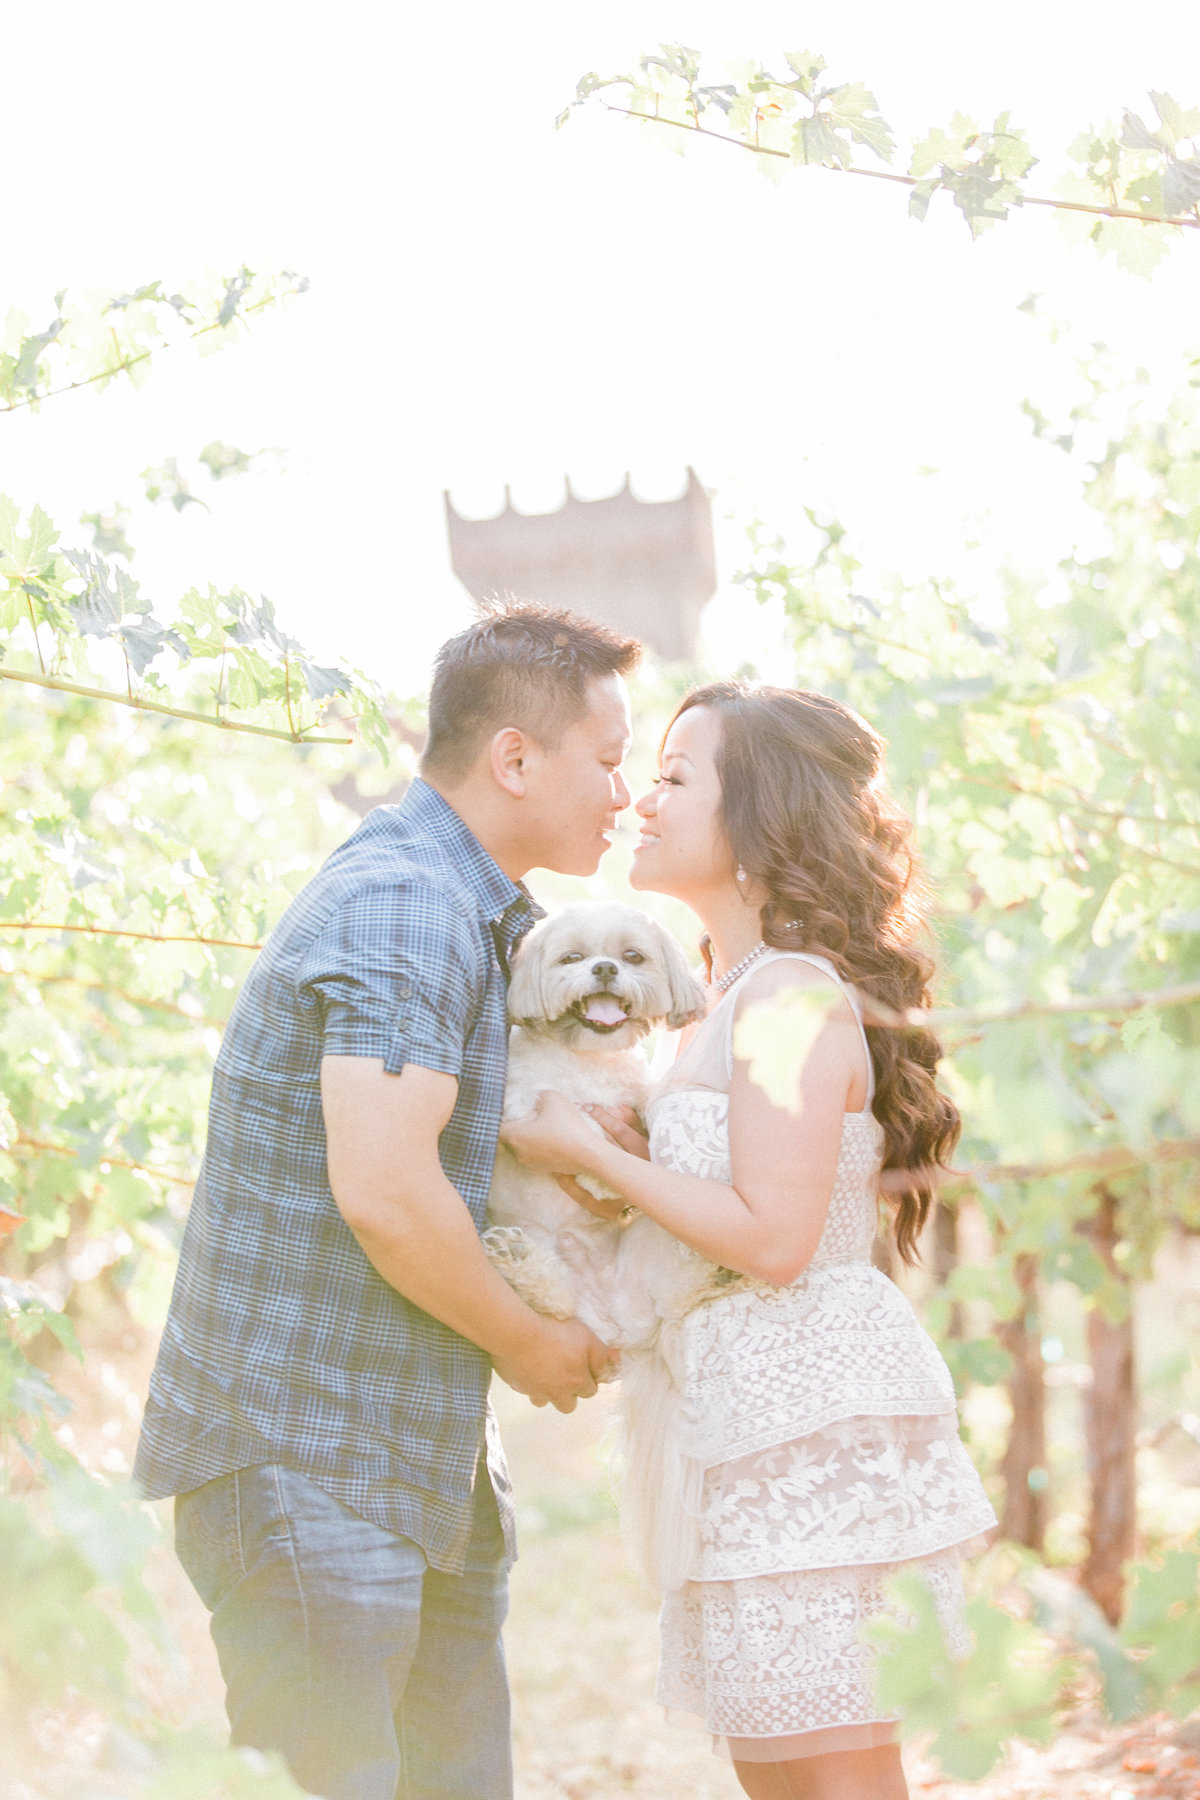 003_winery-dog-engagement-photo-NapaValley